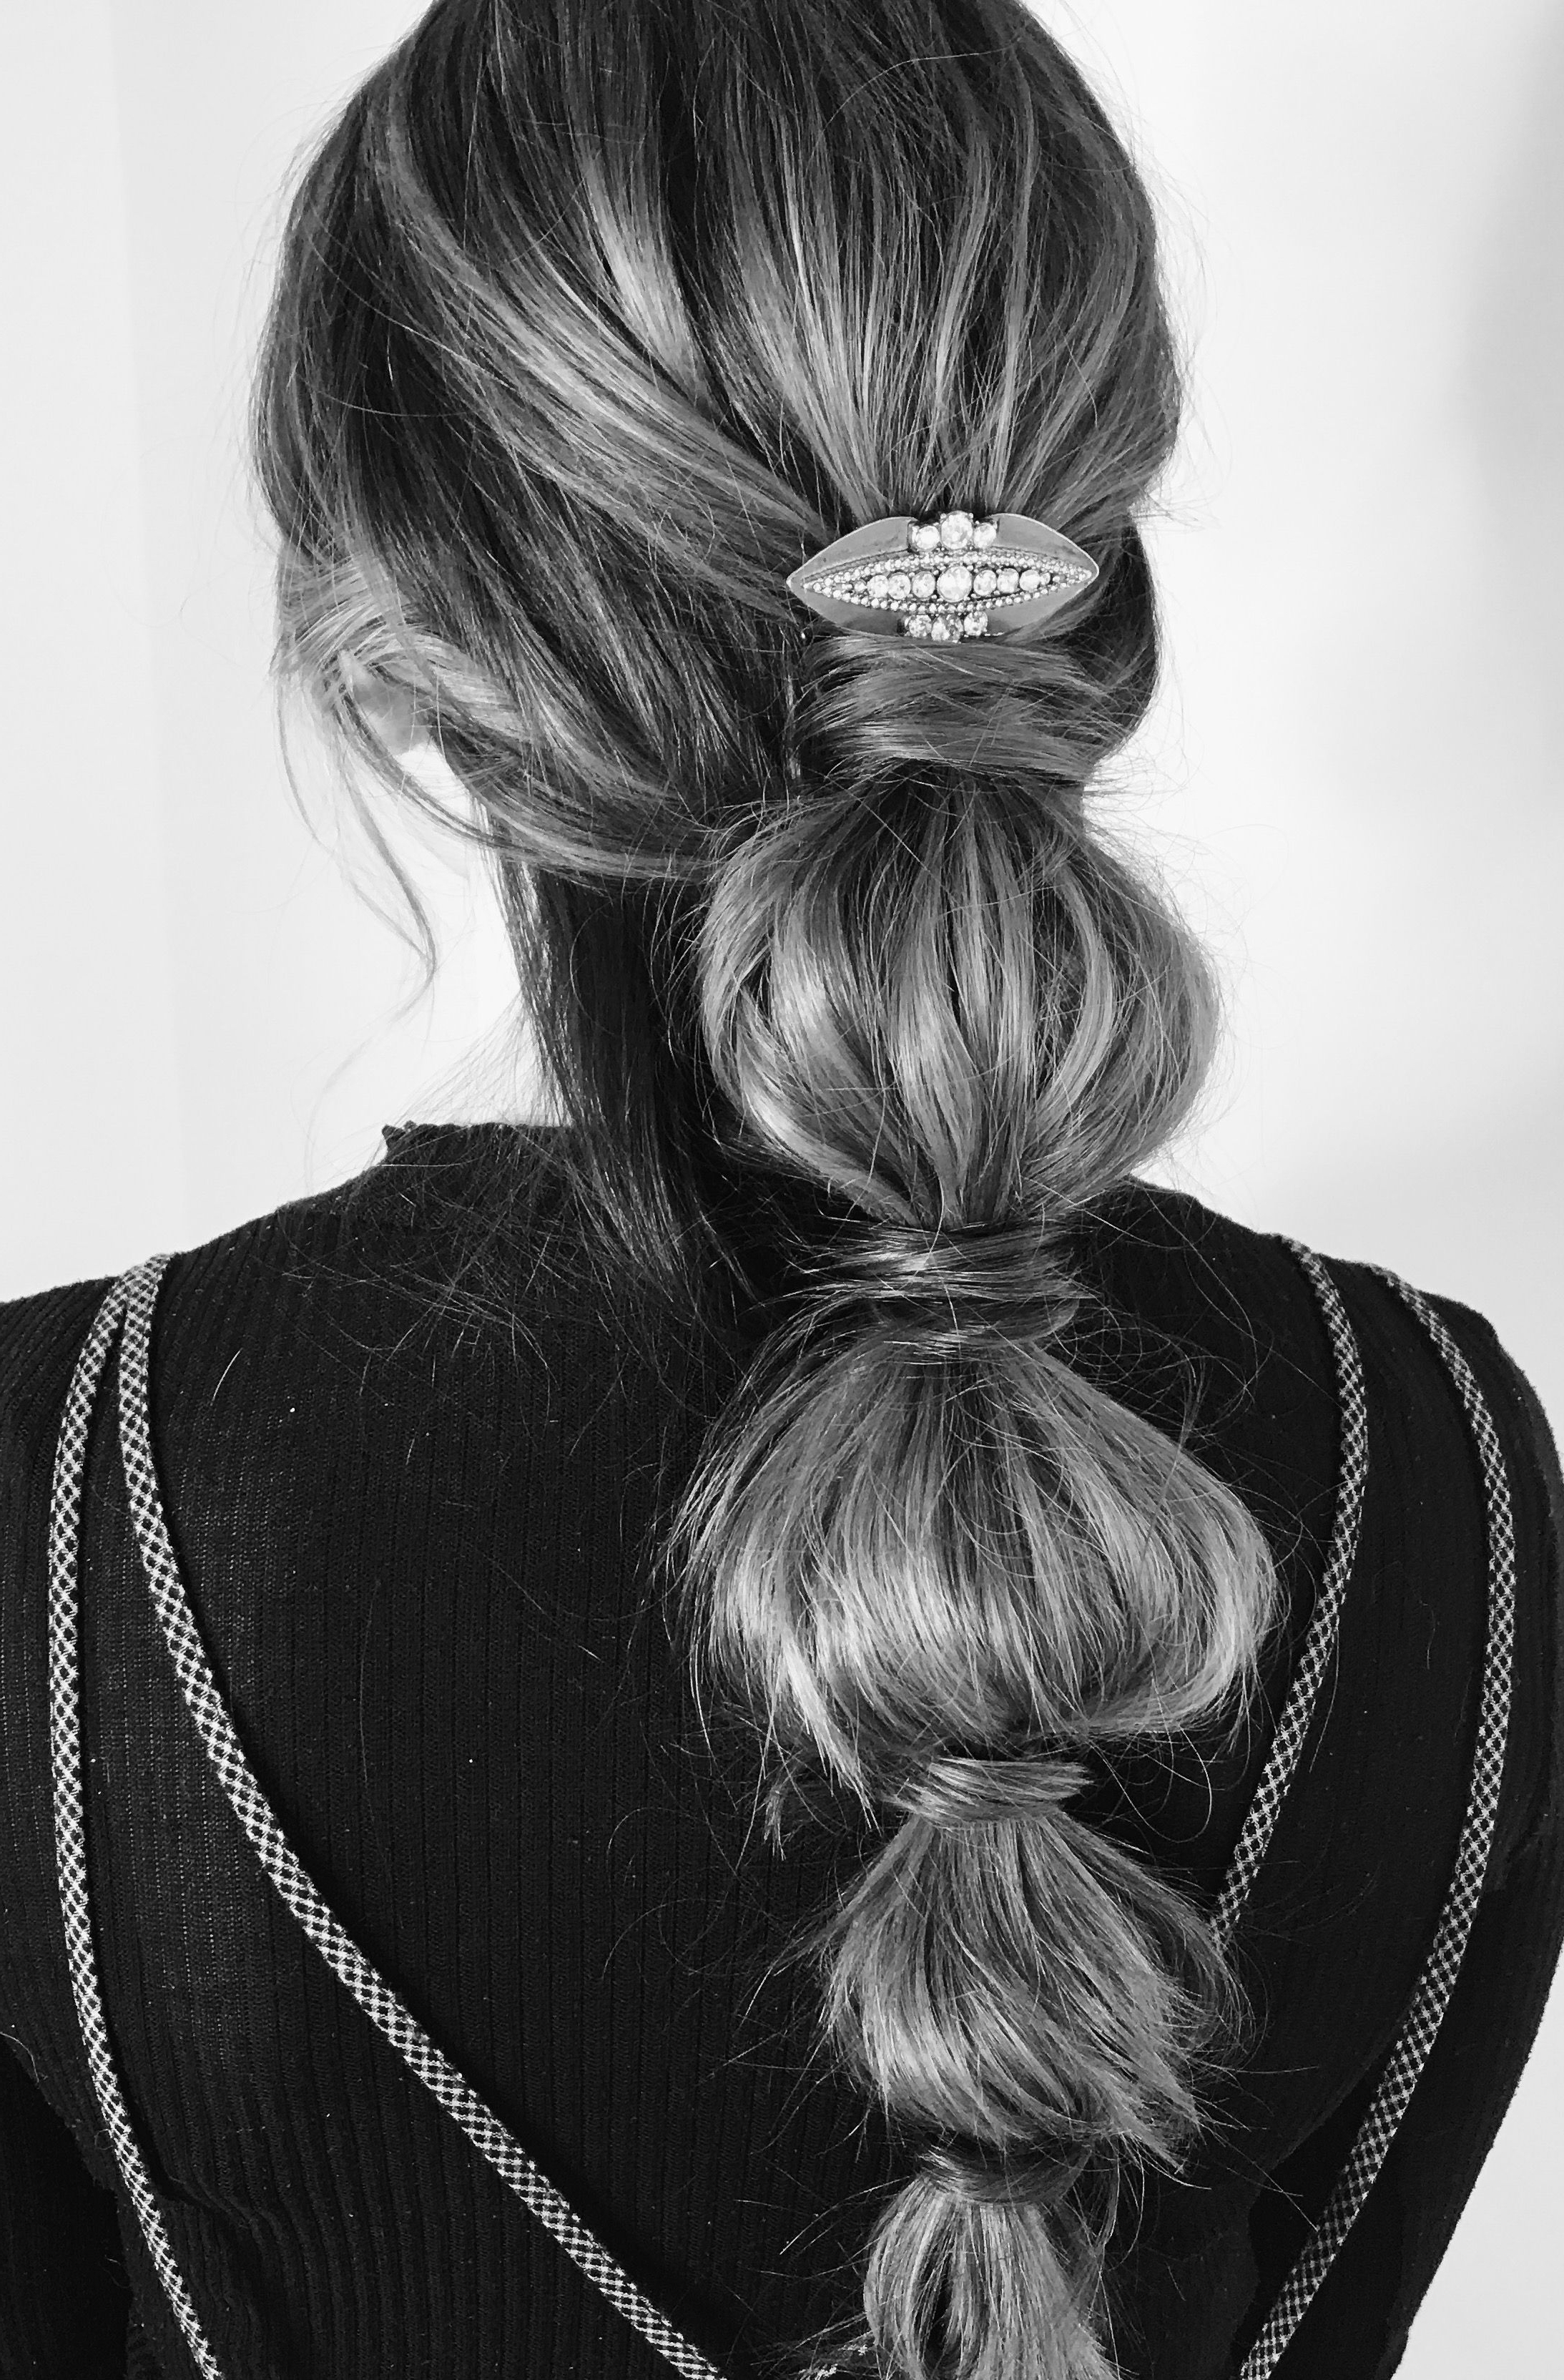 Braids, Updos, Curls In Recent Bubble Braid Updo Hairstyles (View 4 of 20)